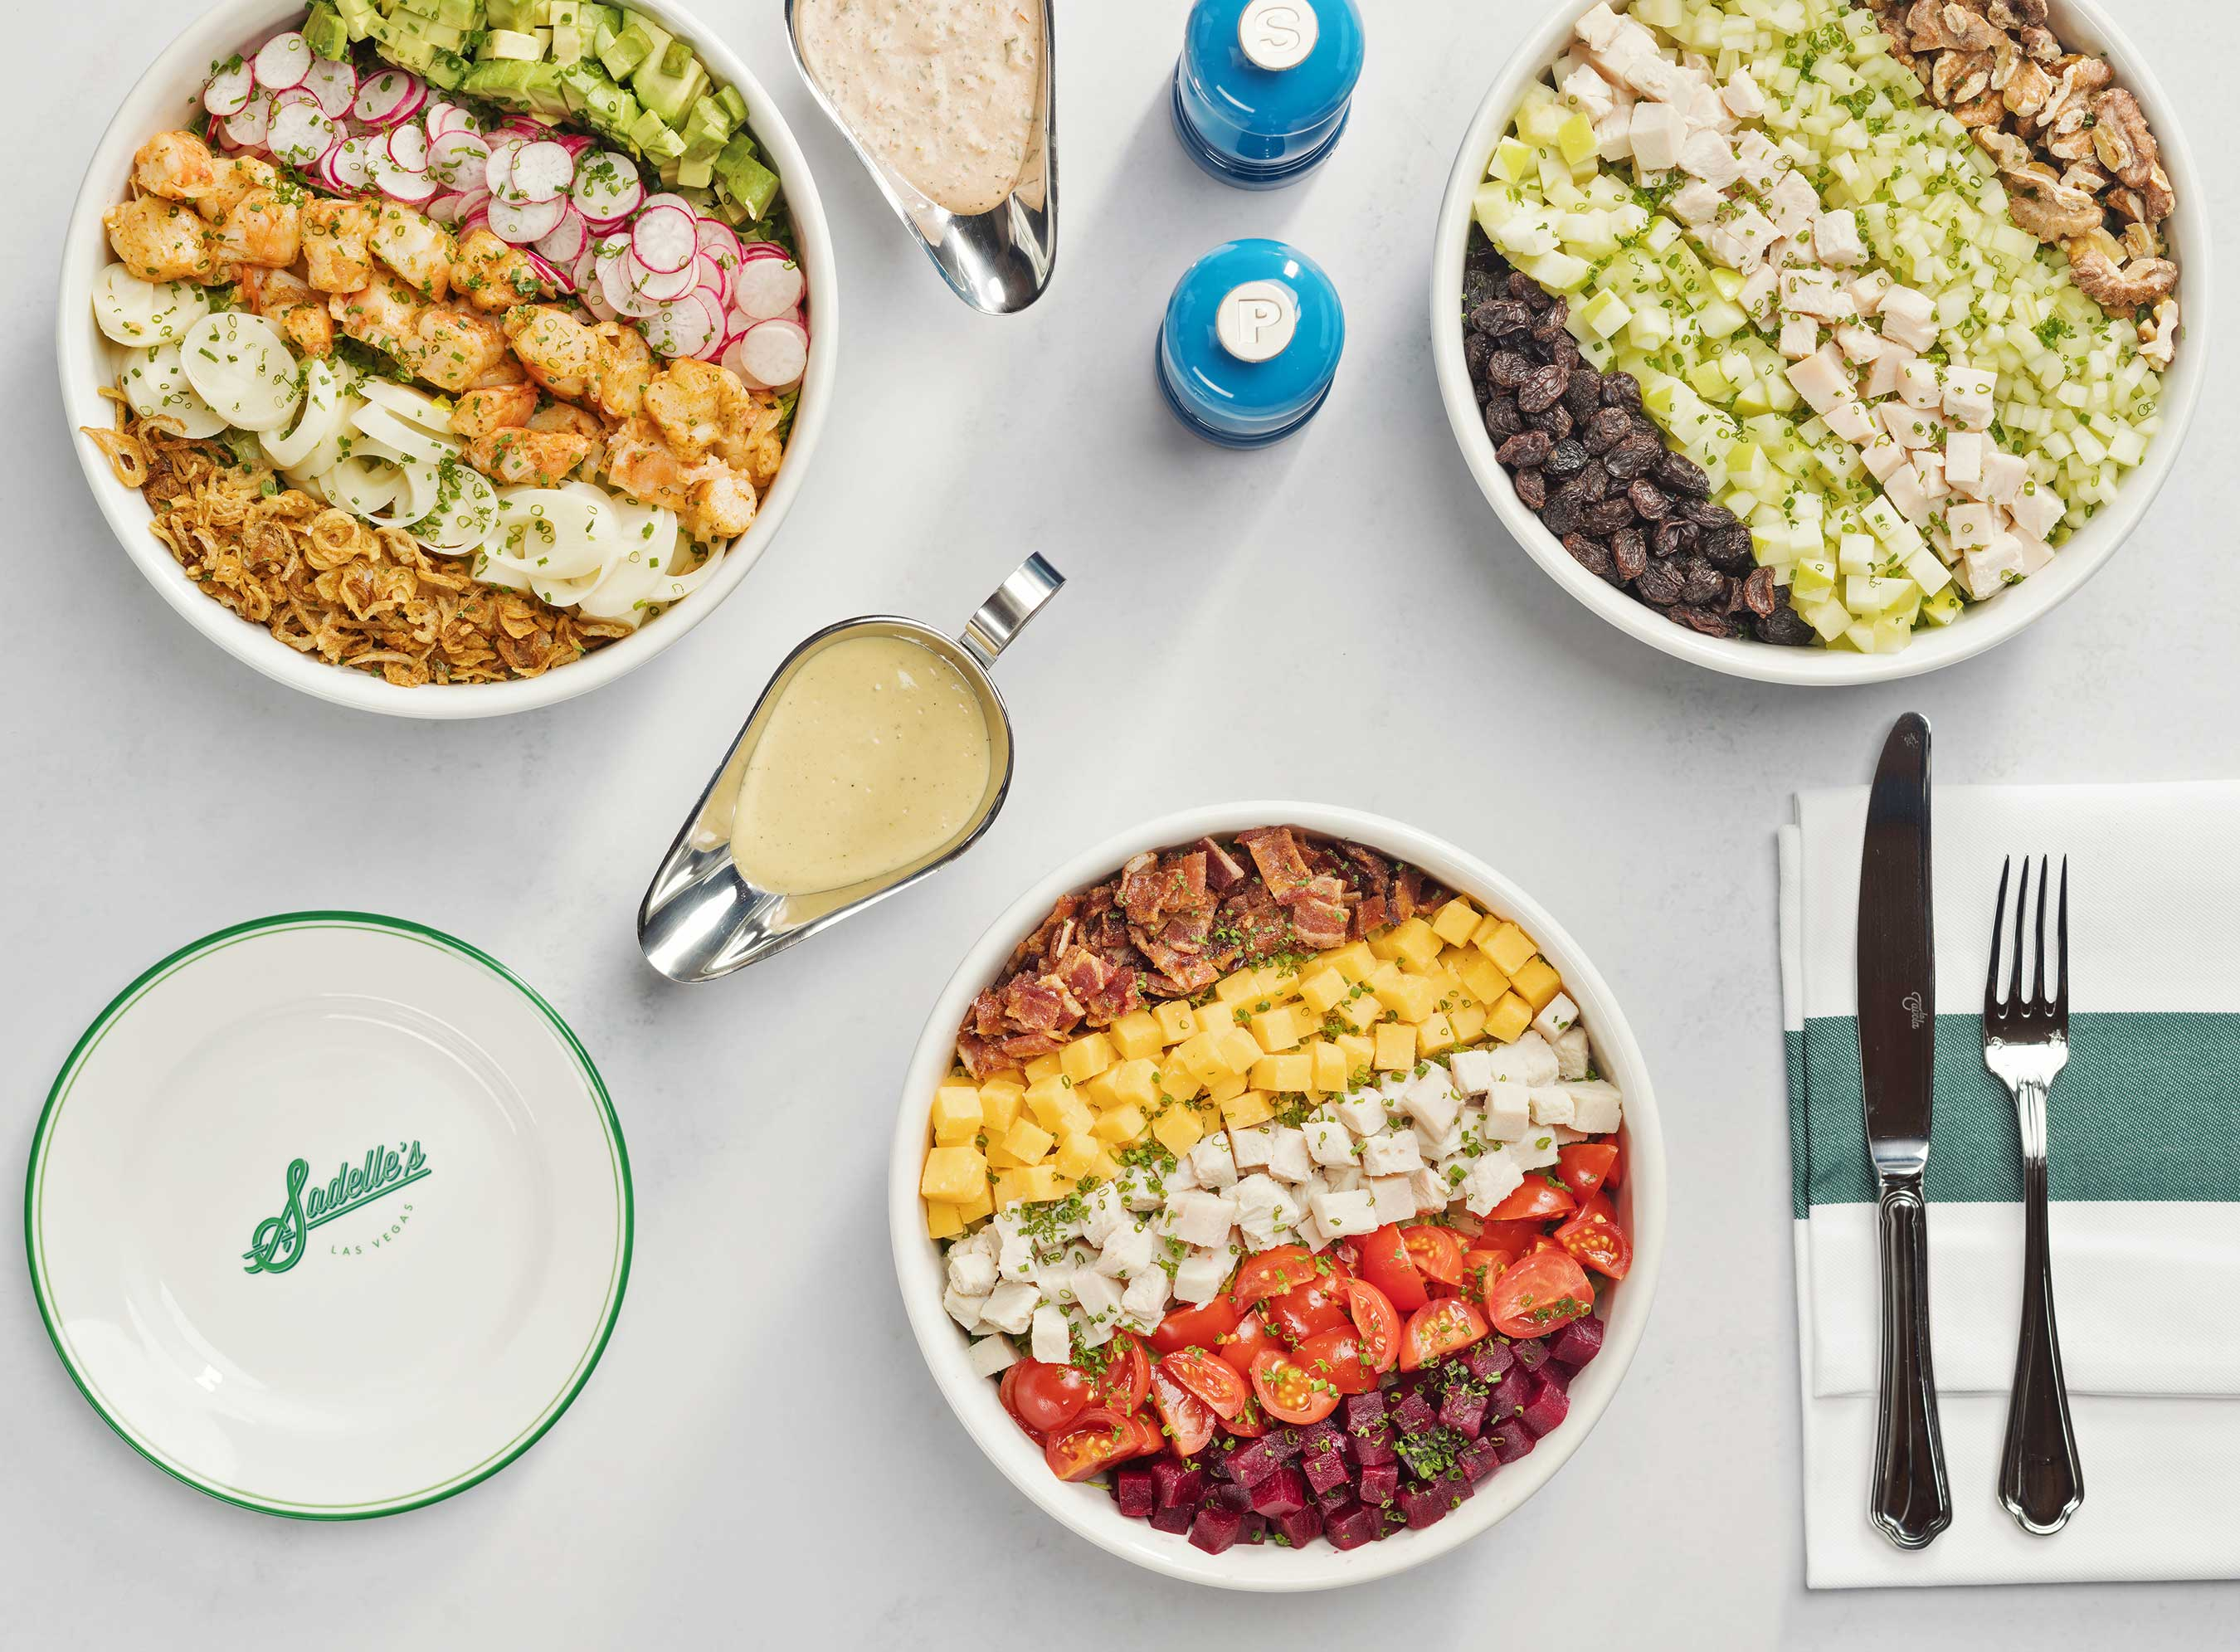 Sadelle's Chopped Salads: Freddy, Beverly and Waldorf